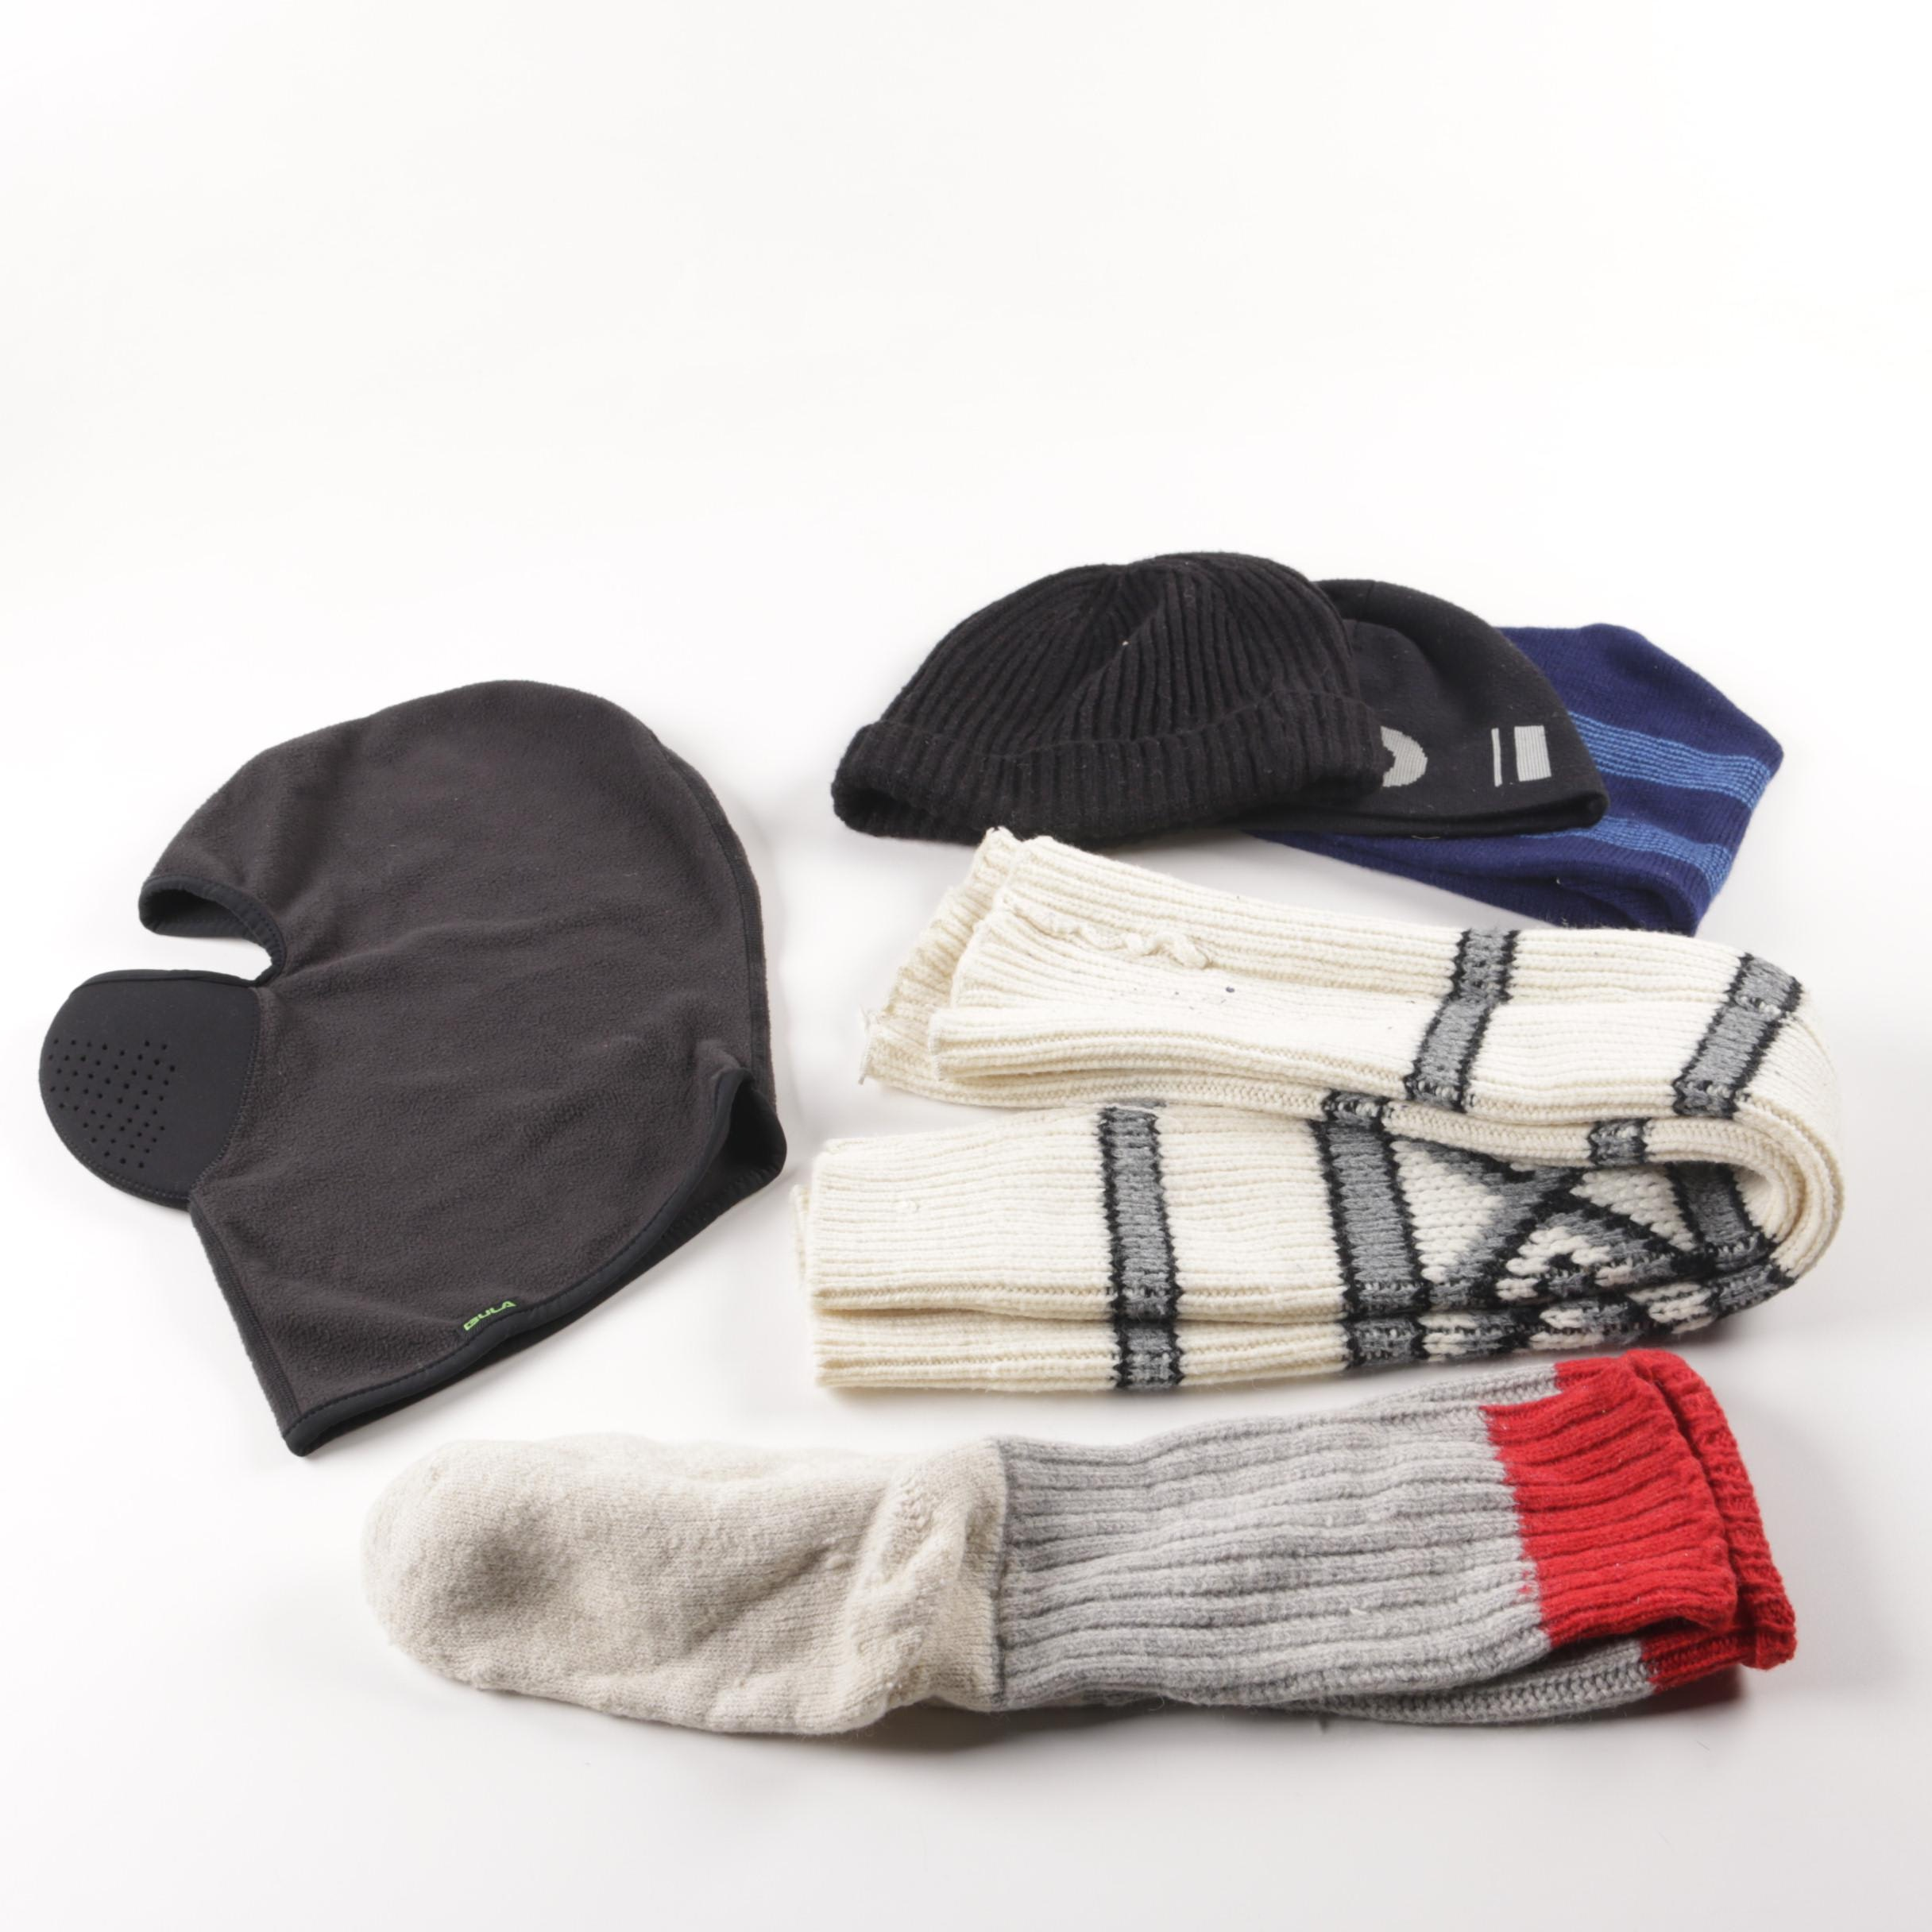 Cold Weather Accessories Including a Ski Mask and Beanies